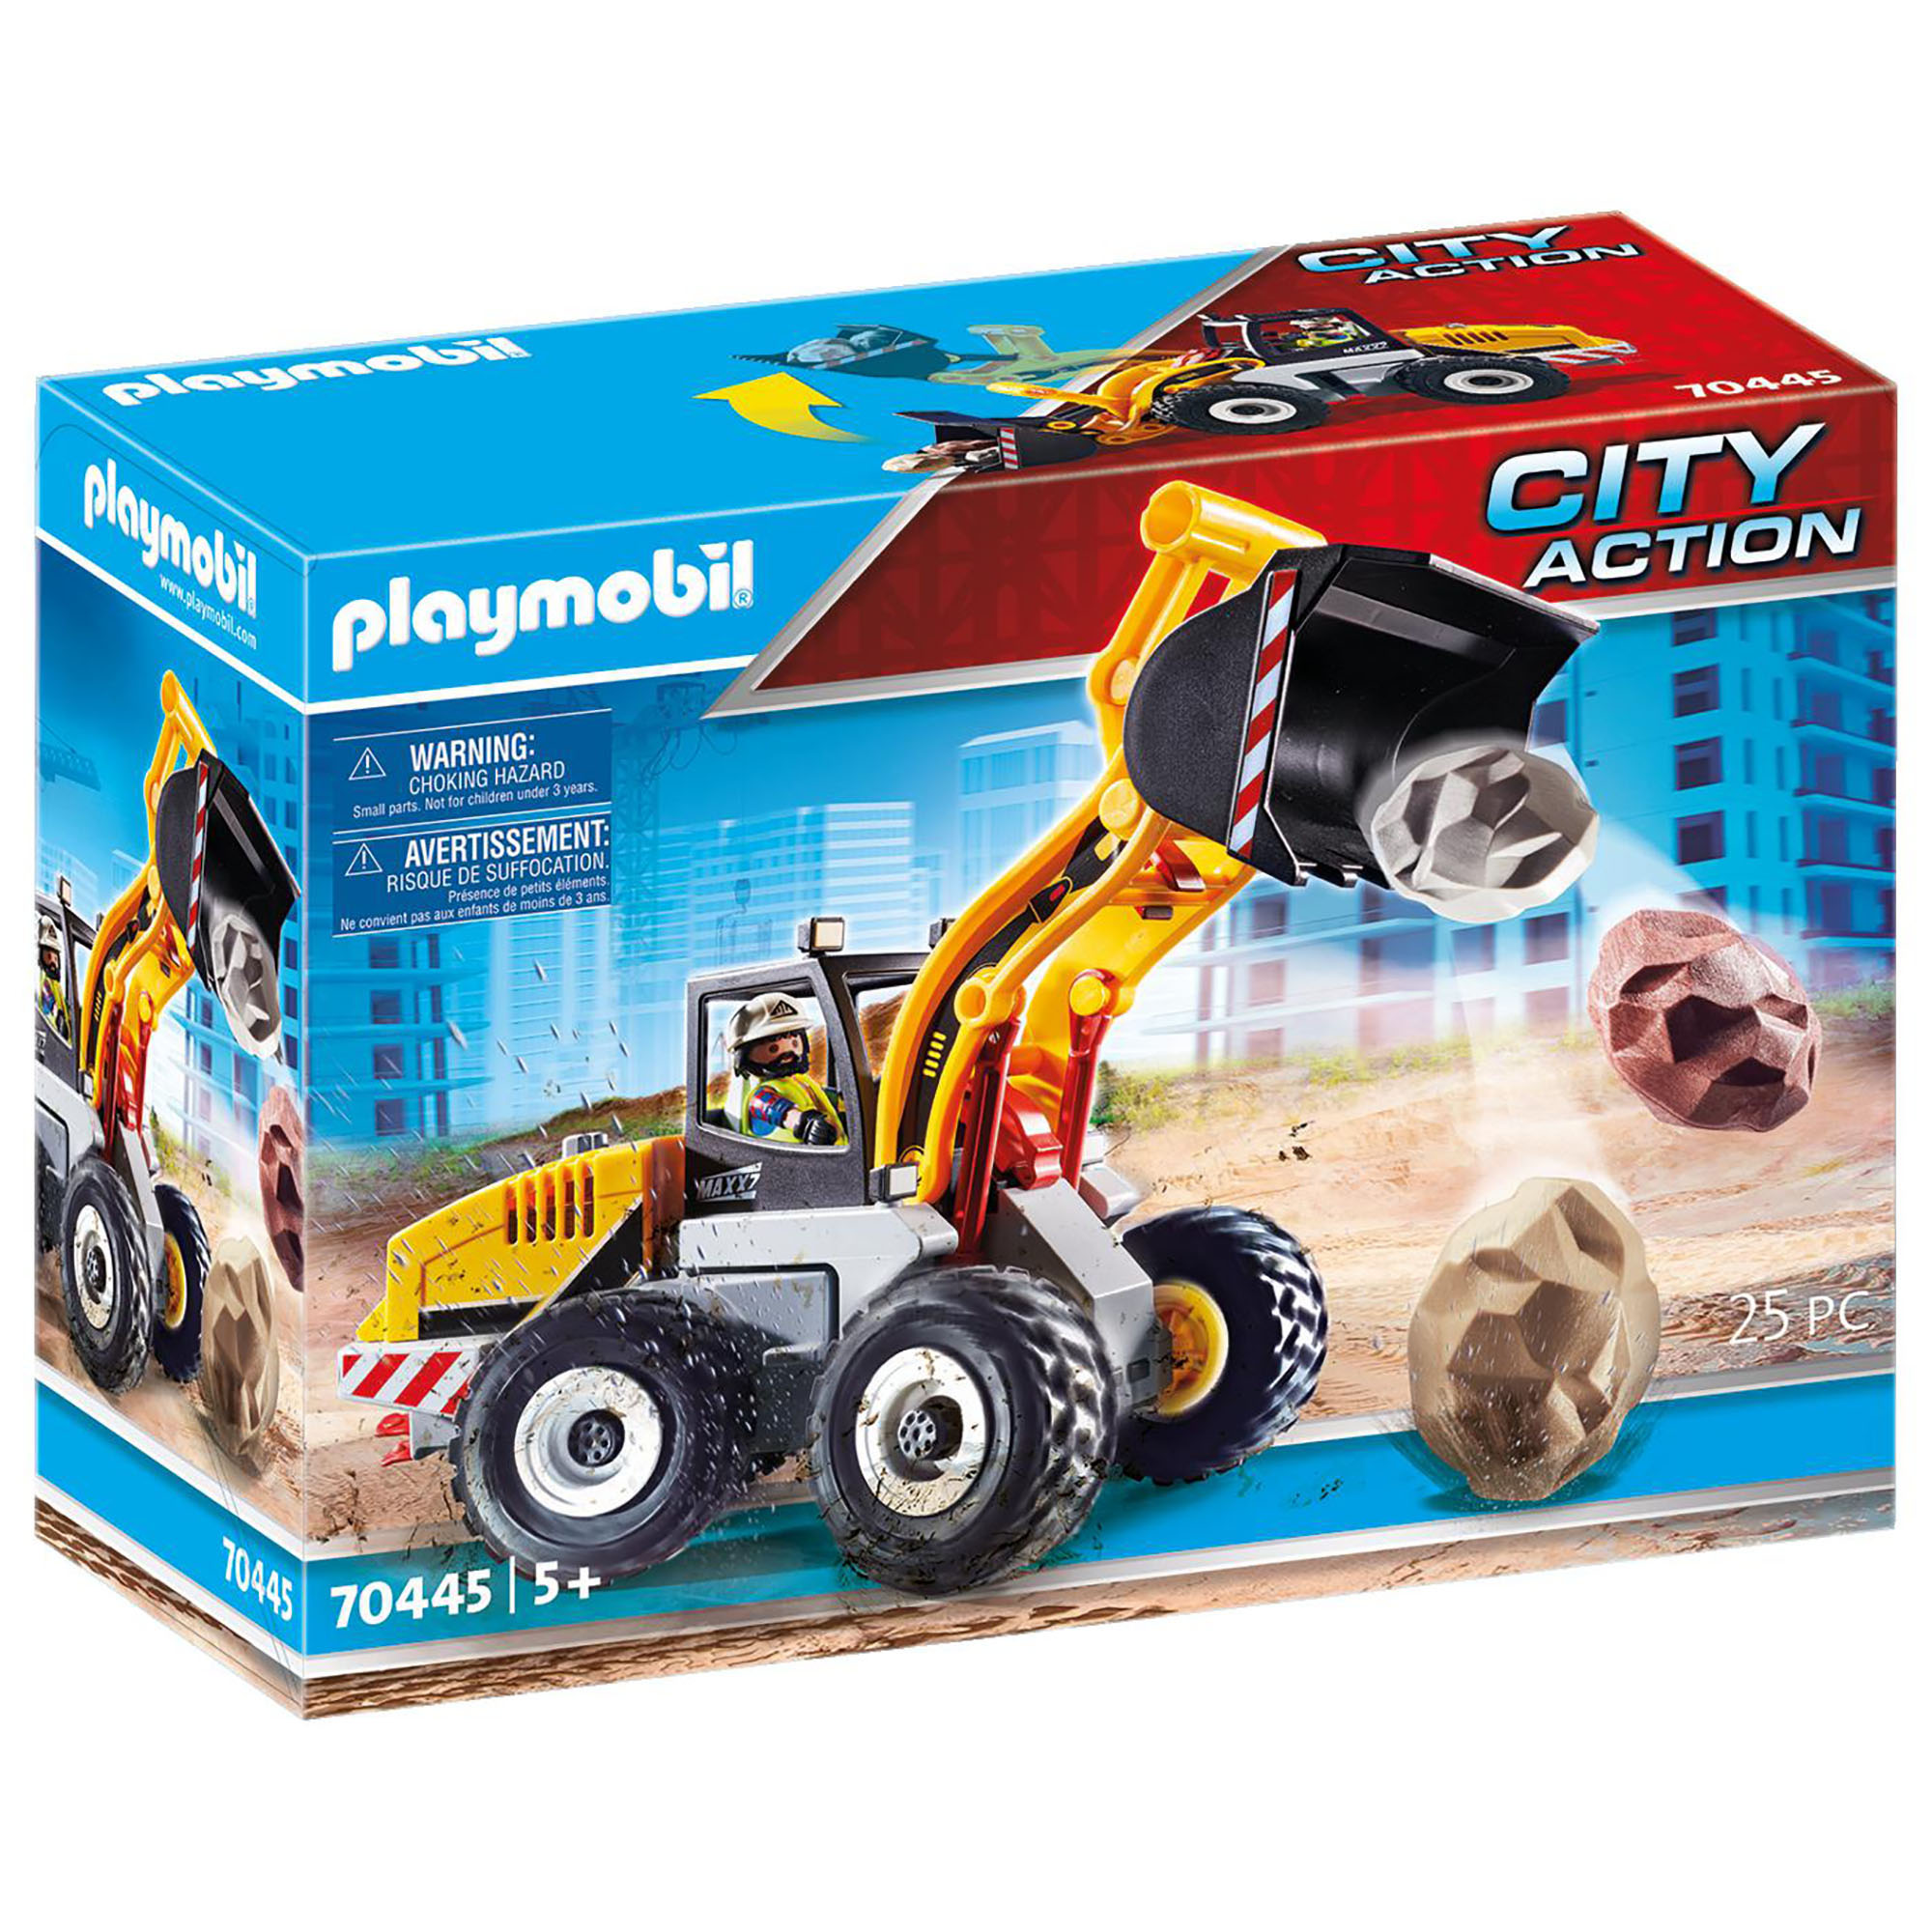 Incarcator frontal playmobil city action